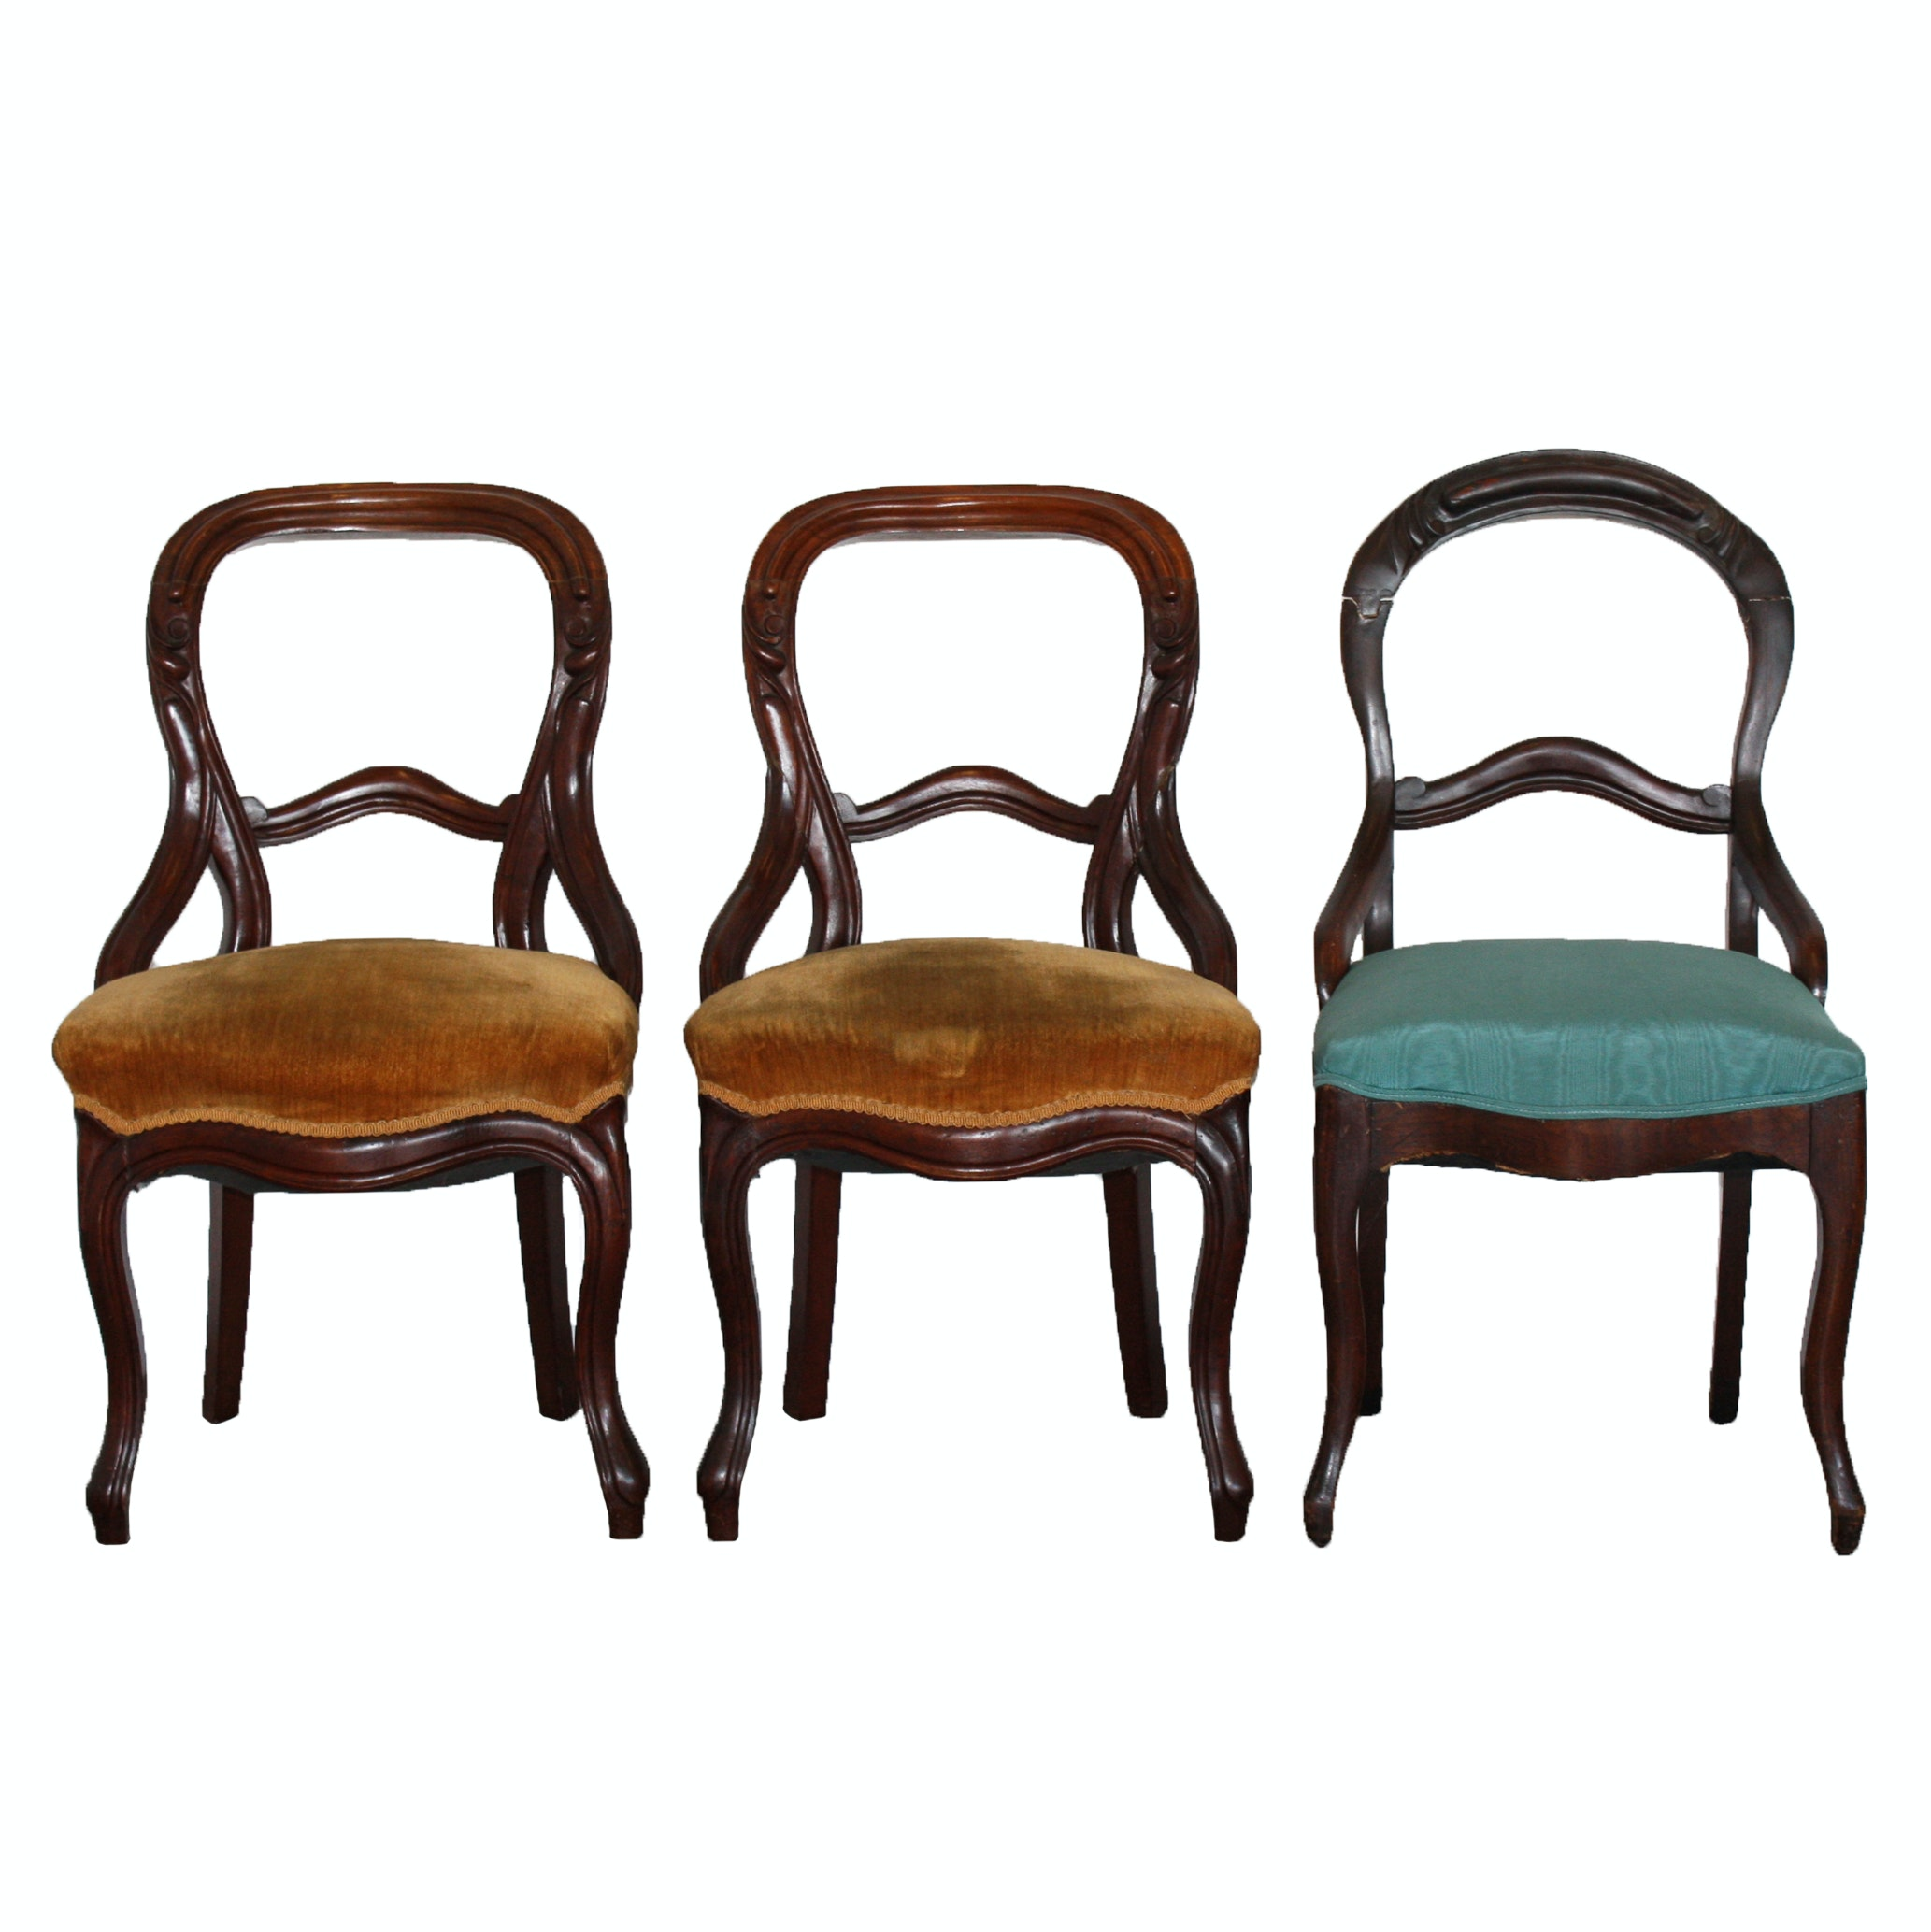 Three Victorian Mahogany Finished Balloon Back Side Chairs